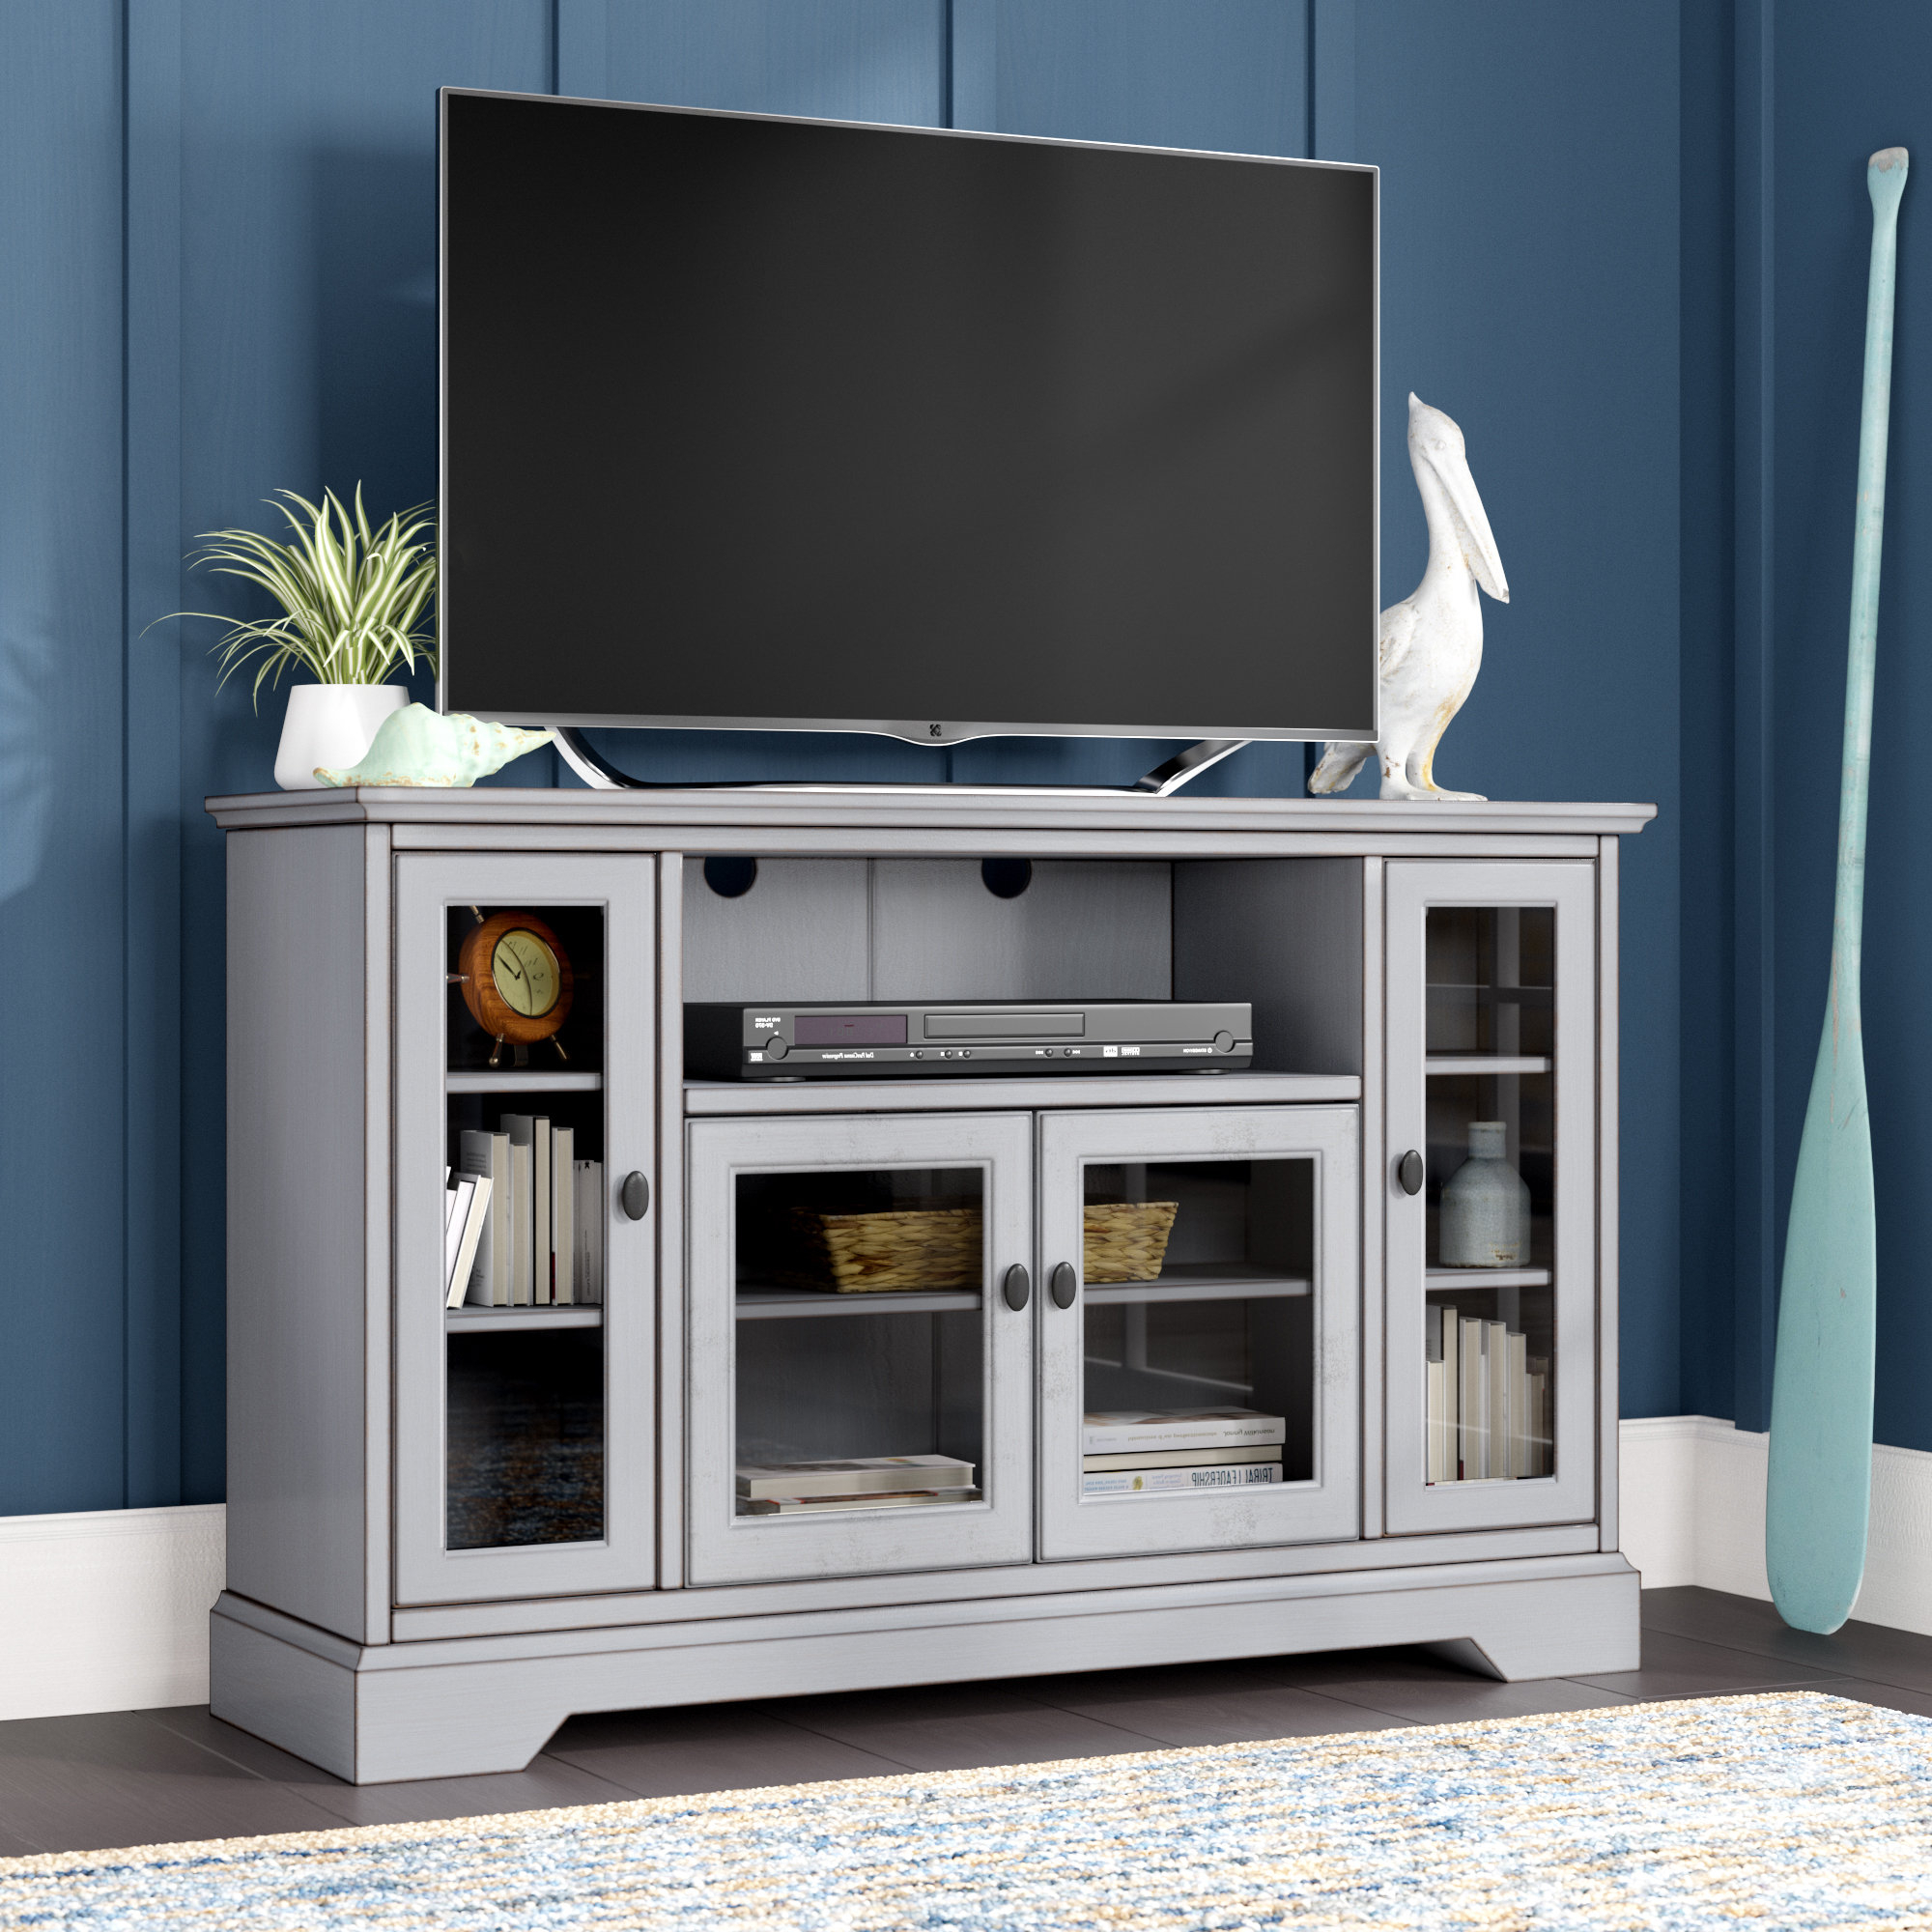 72 Inch Tv Stand | Wayfair For Laurent 60 Inch Tv Stands (View 15 of 20)